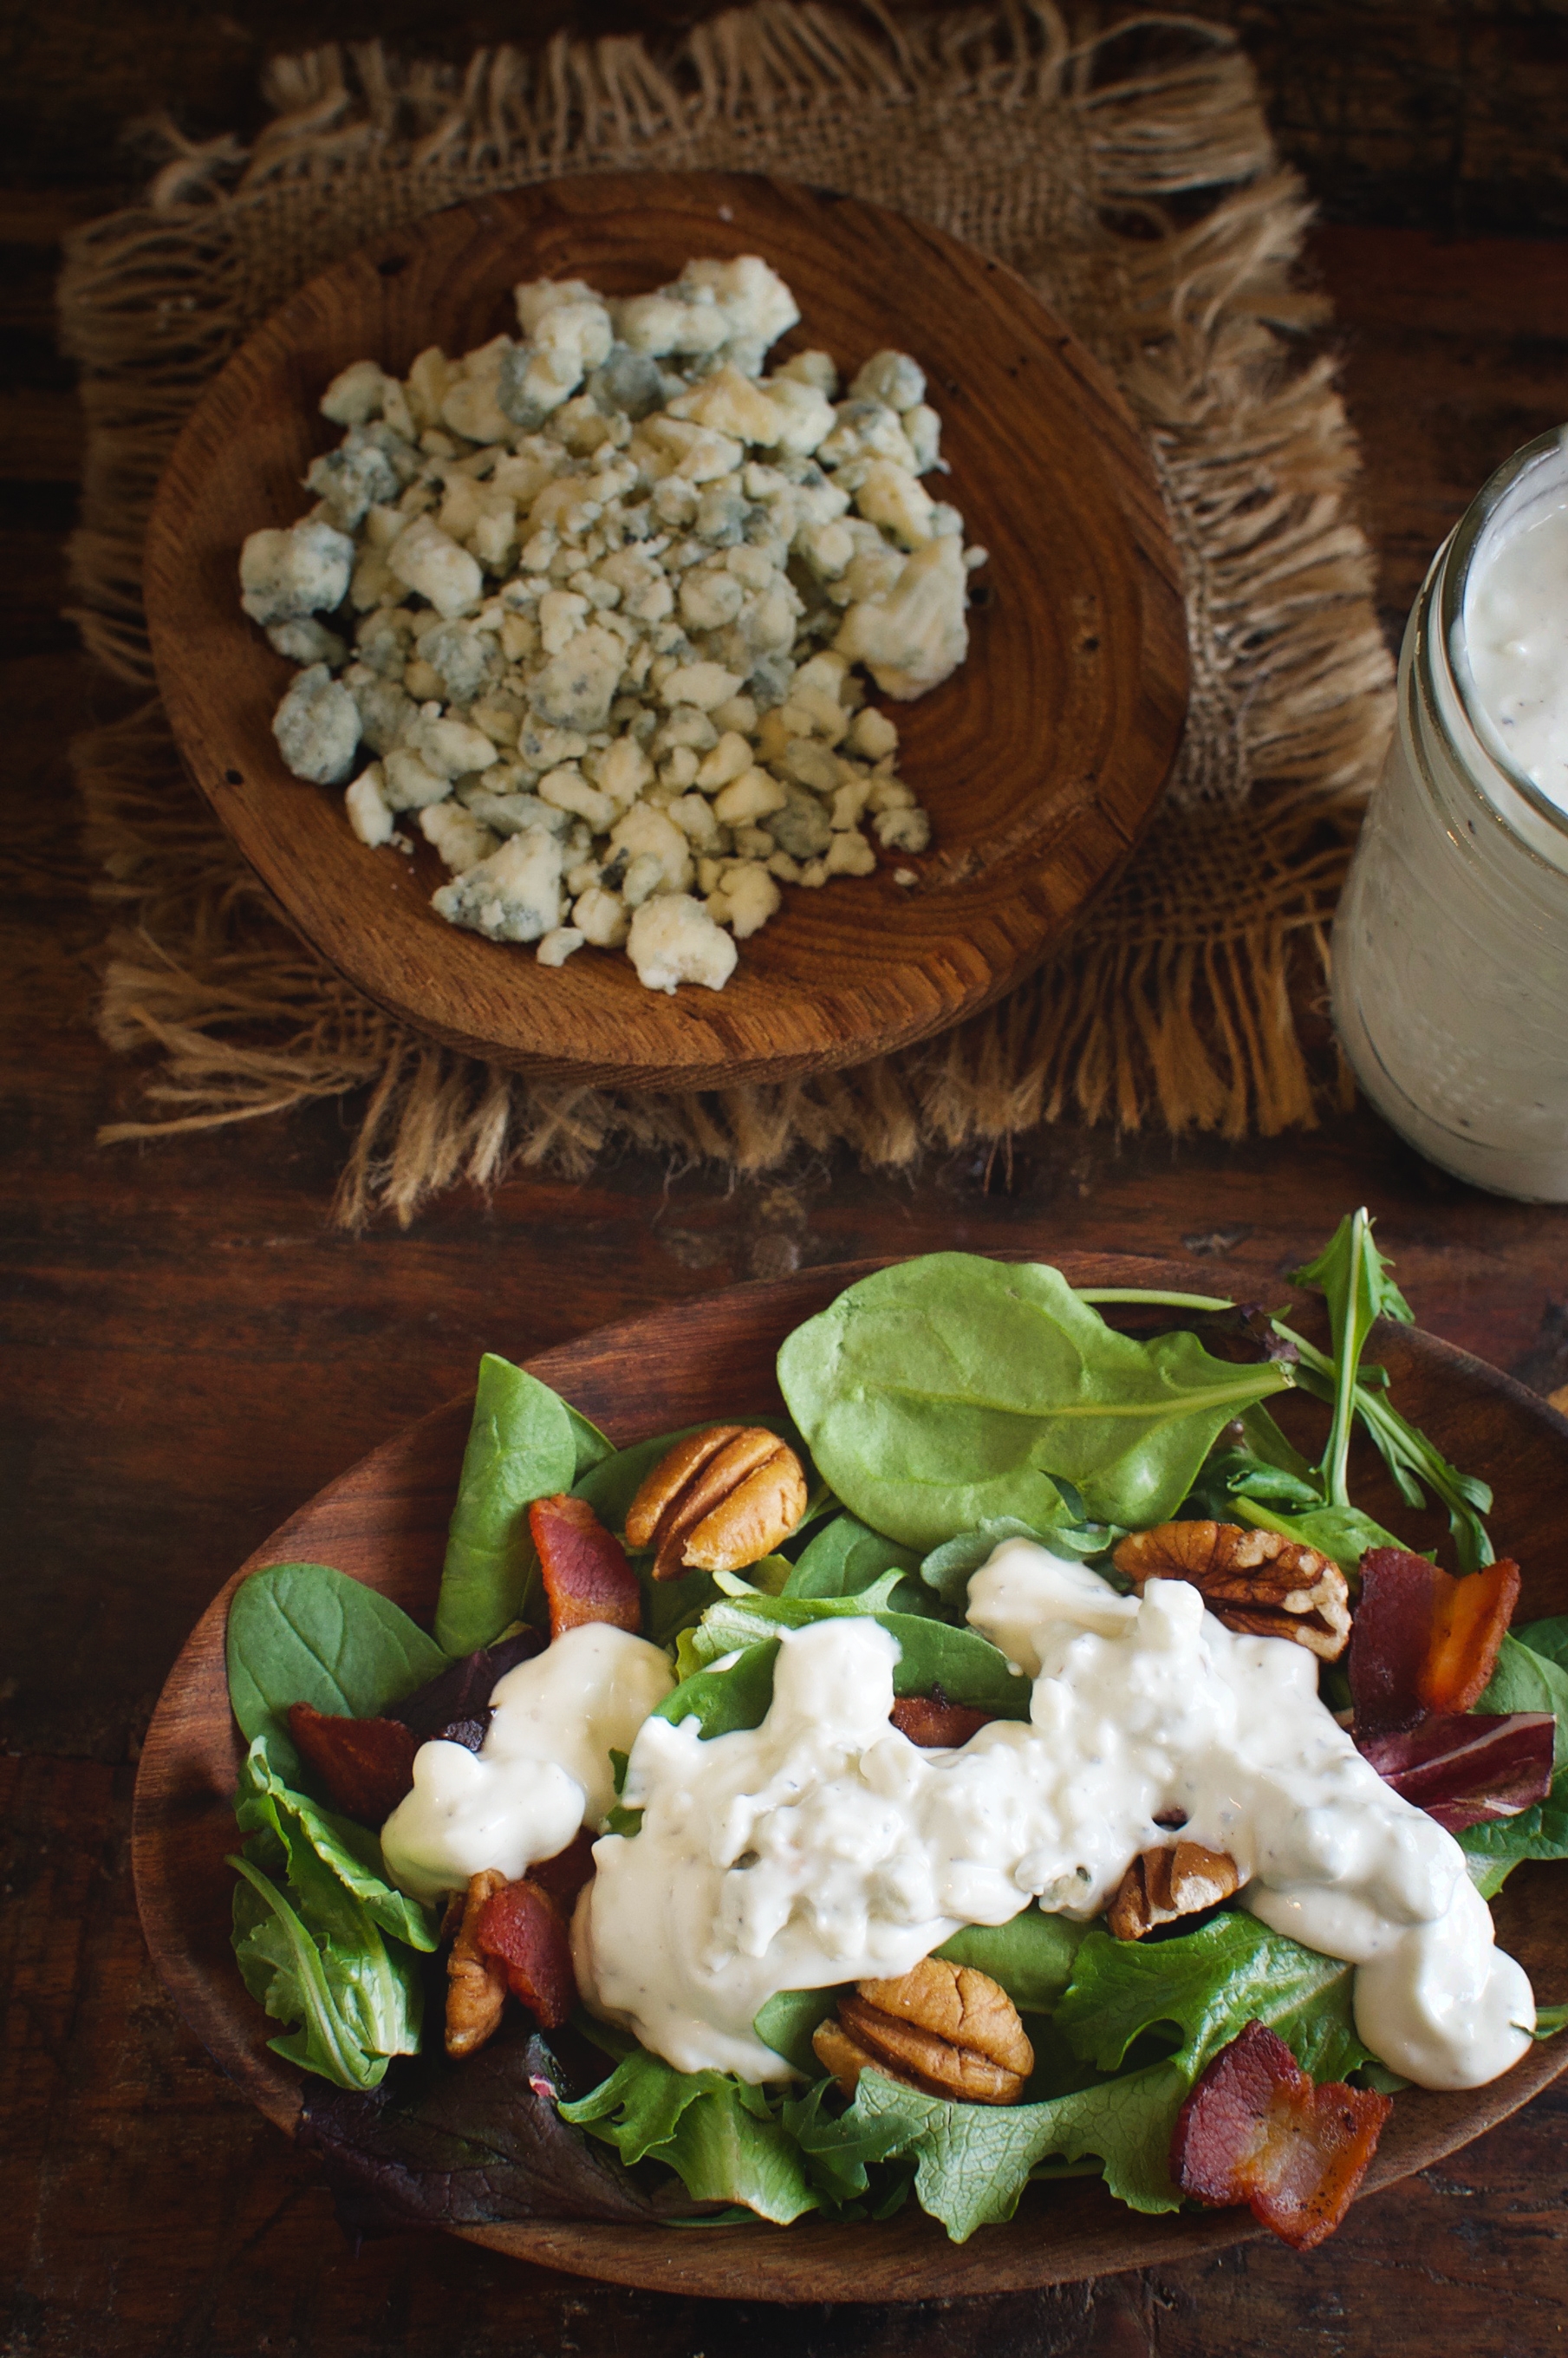 Low-Carb Blue Cheese Dressing (Dip) on a salad.